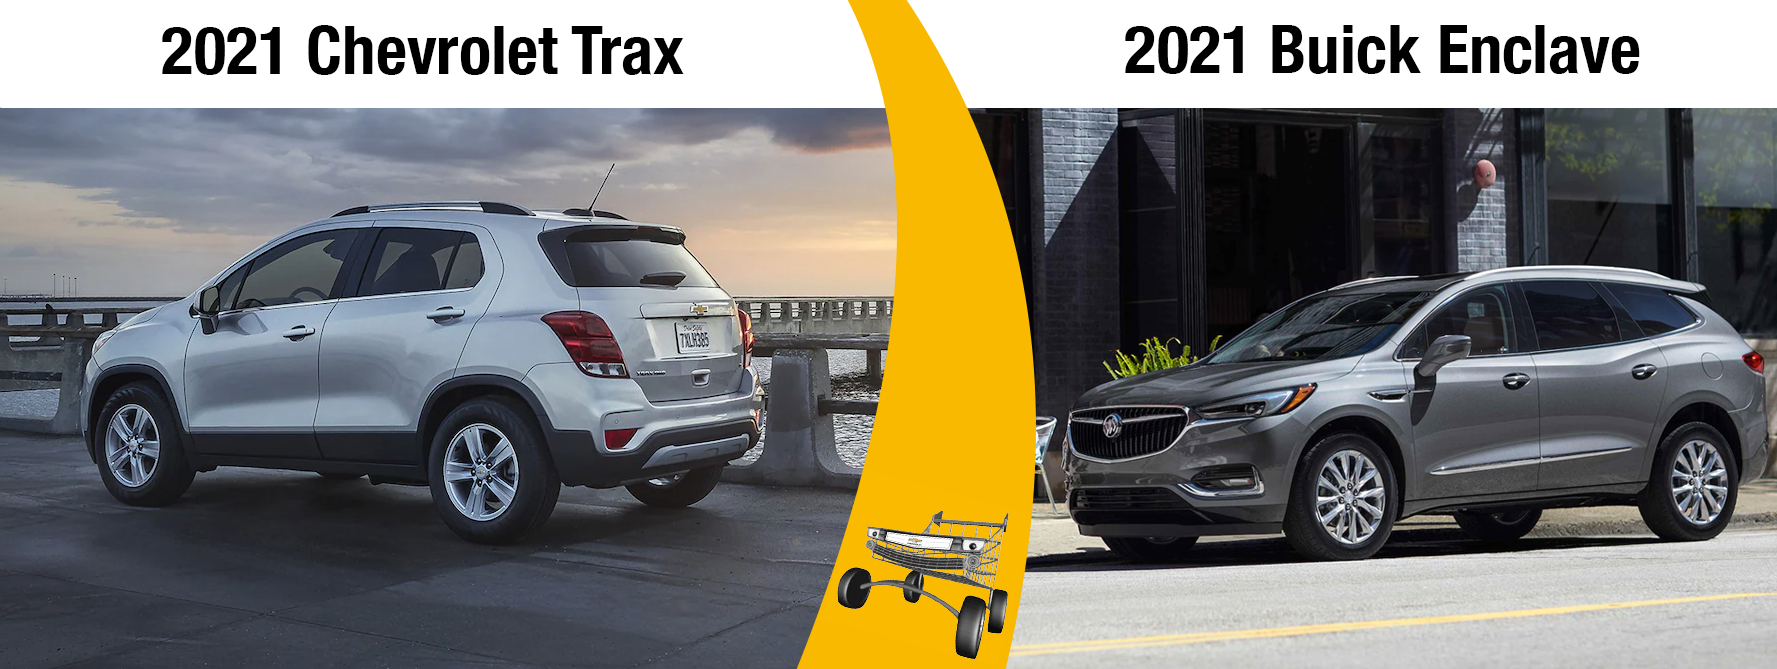 New 2021 Chevrolet Trax Vs 2021 Buick Enclave Differences